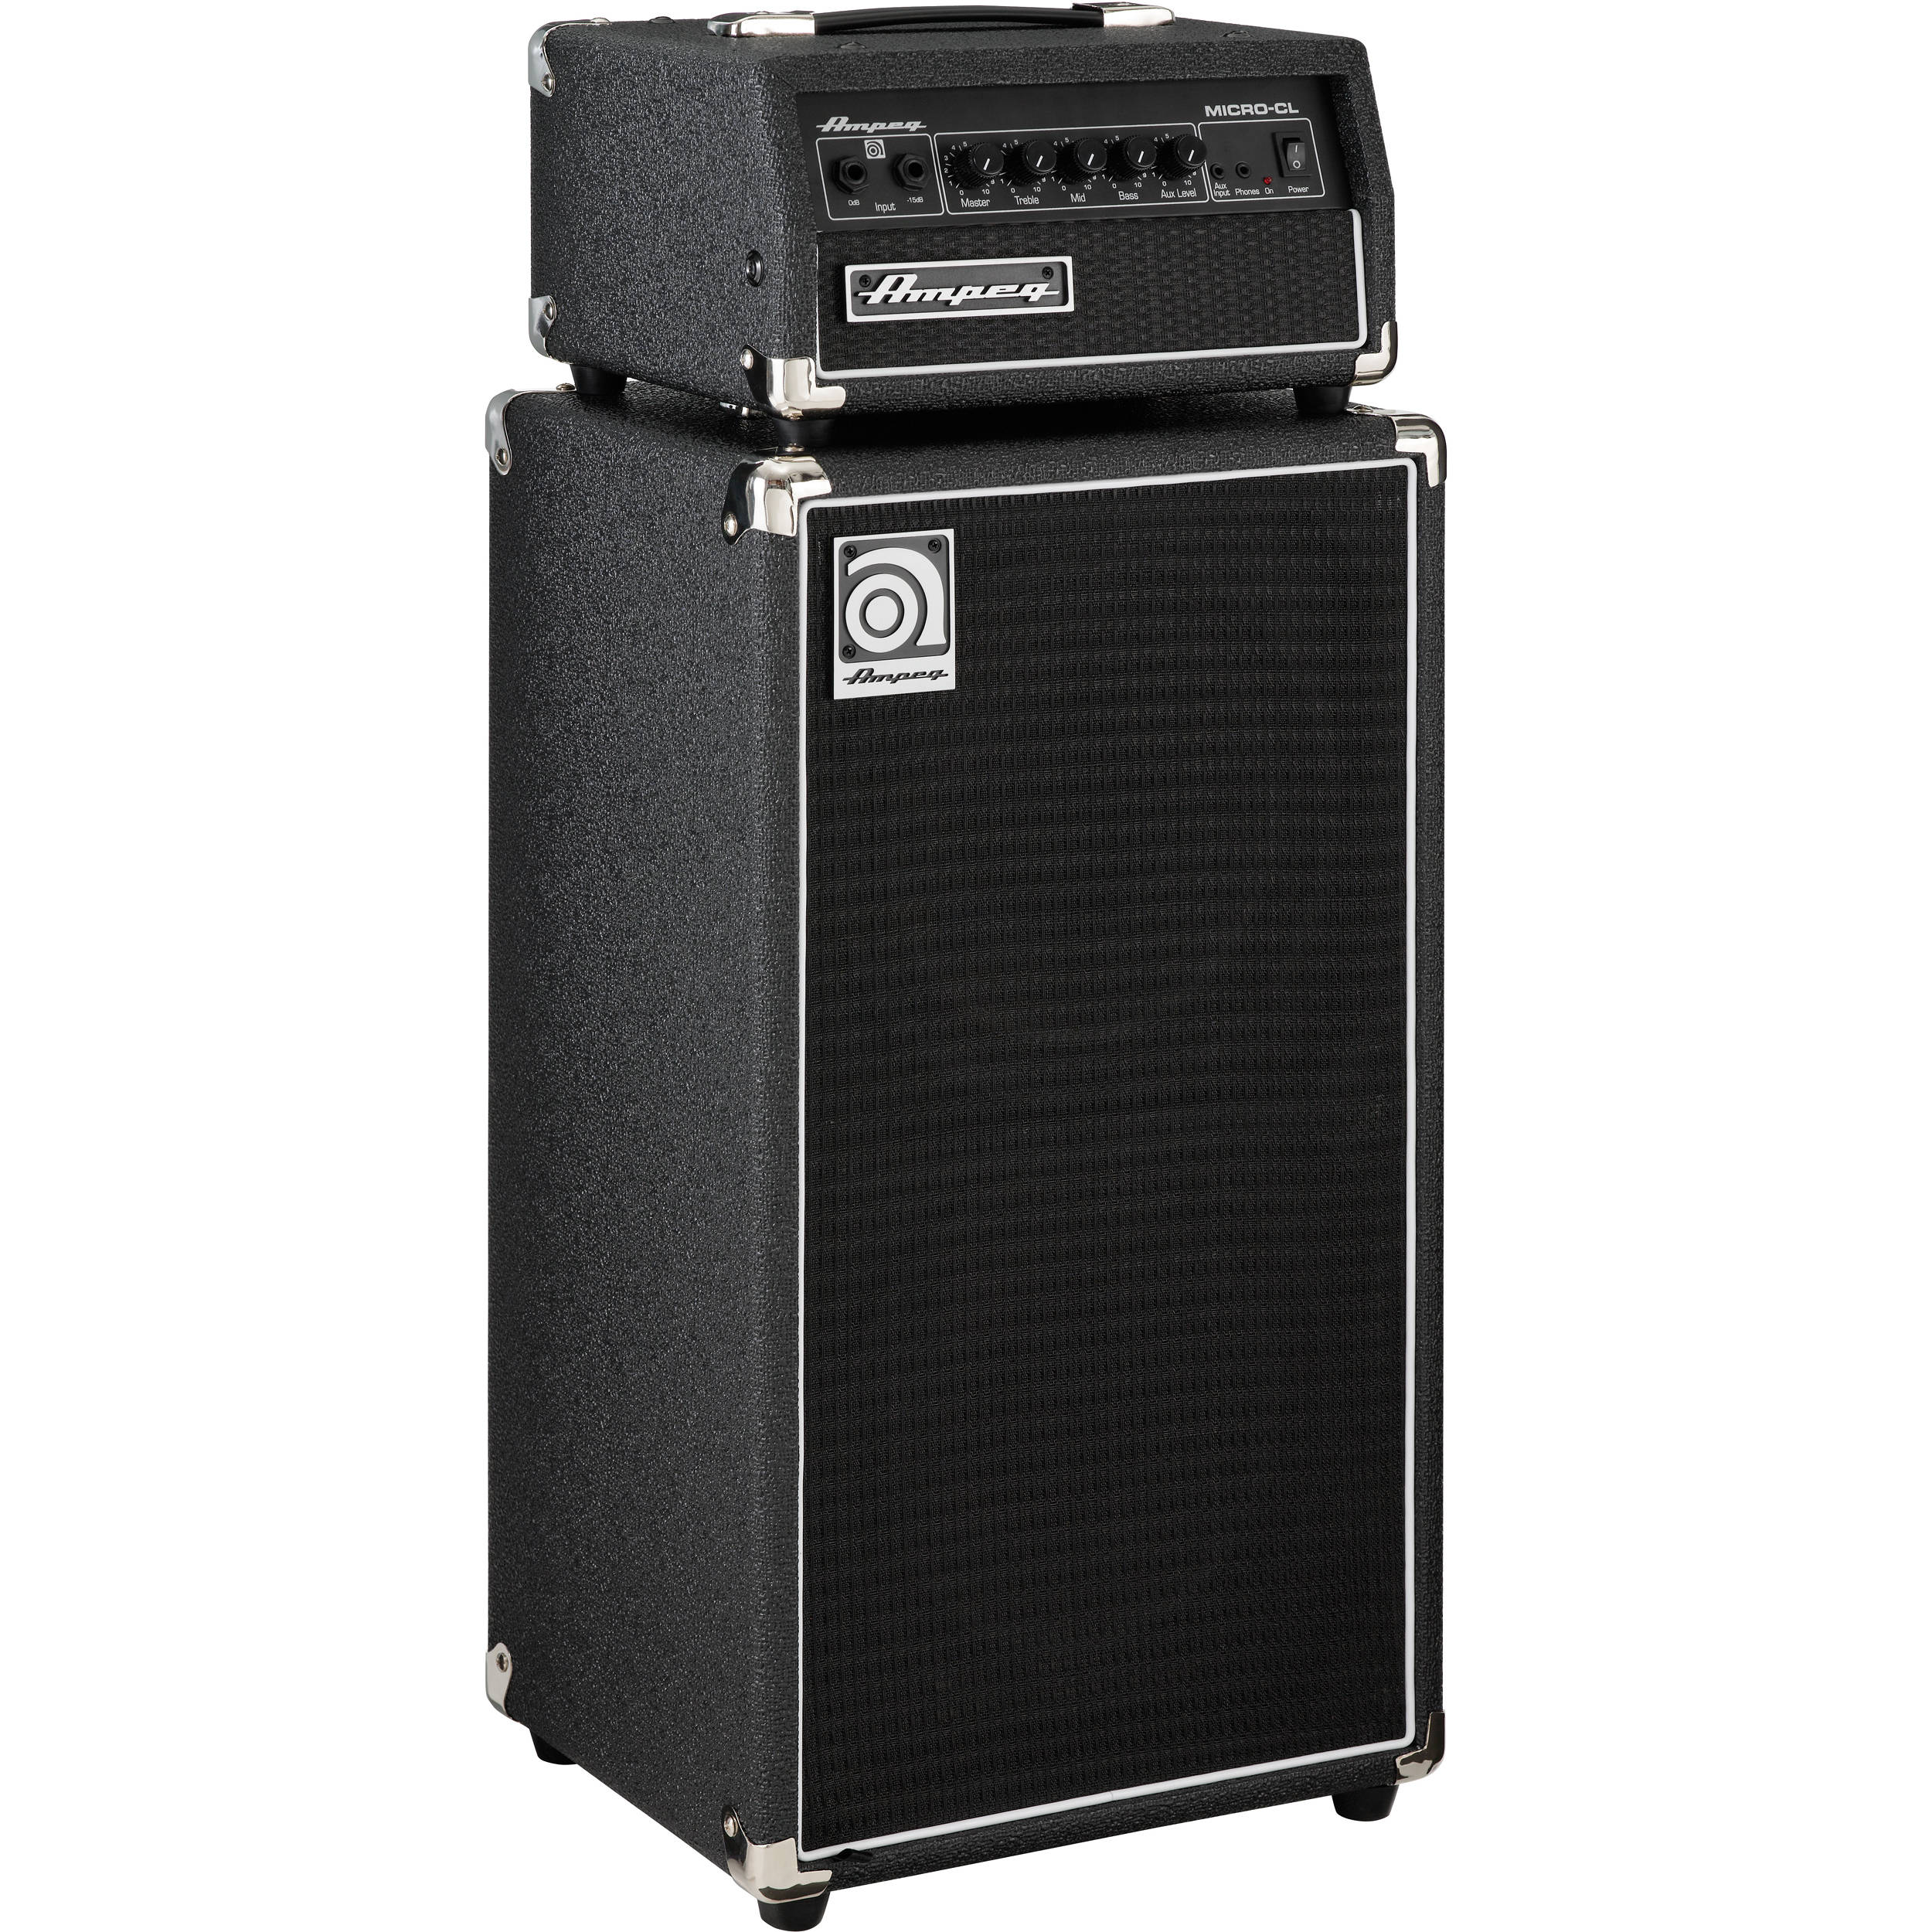 ampeg micro cl svt style 2x10 cabinet micro cl stack b h. Black Bedroom Furniture Sets. Home Design Ideas